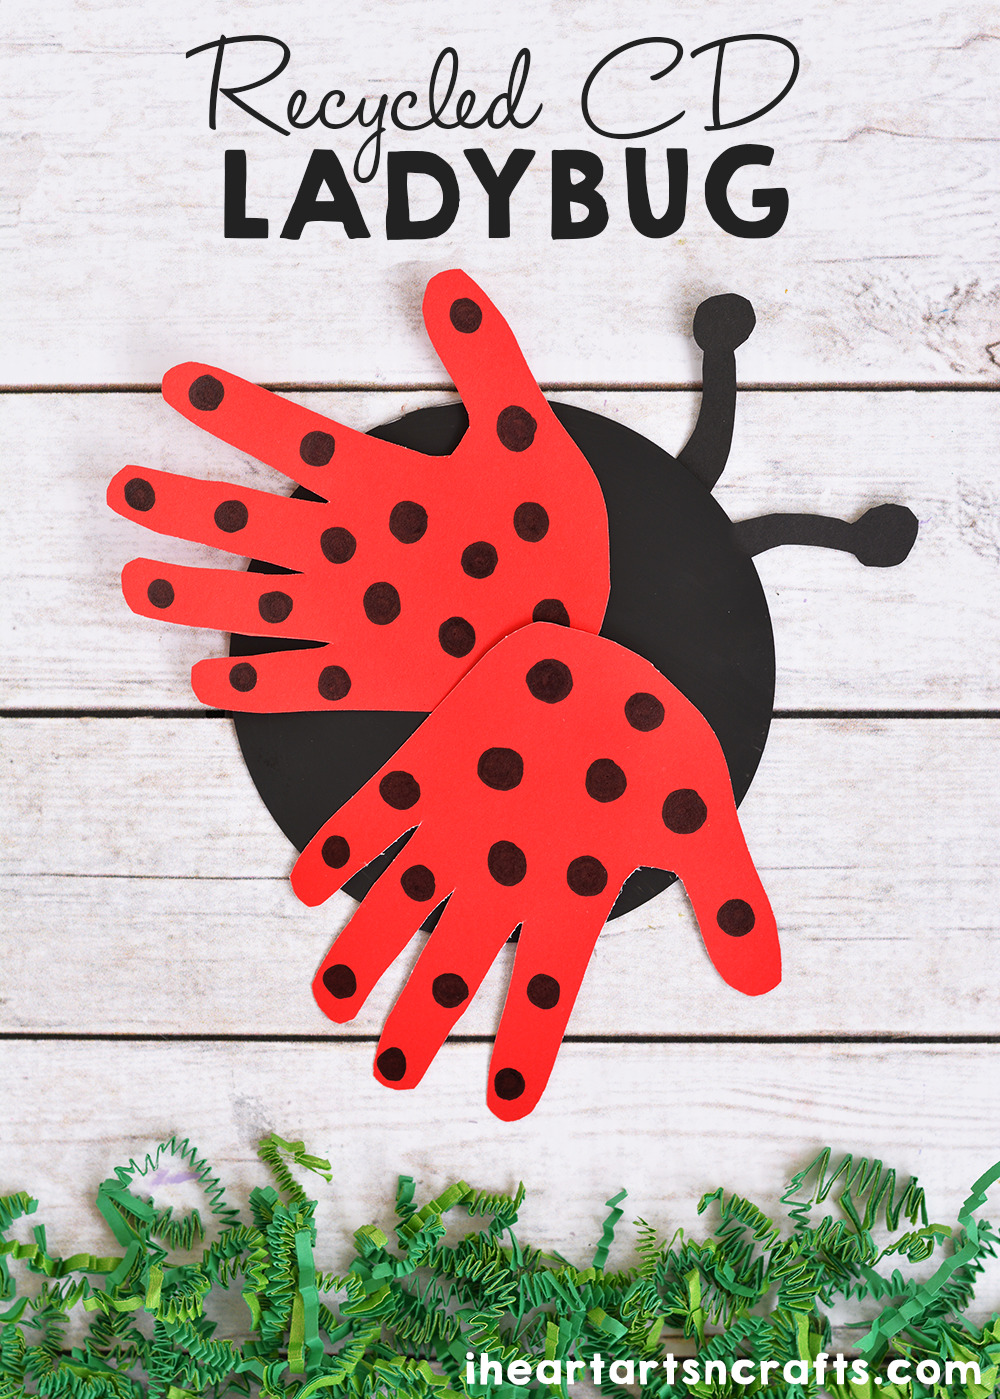 Recycled CD Ladybug Craft For Kids